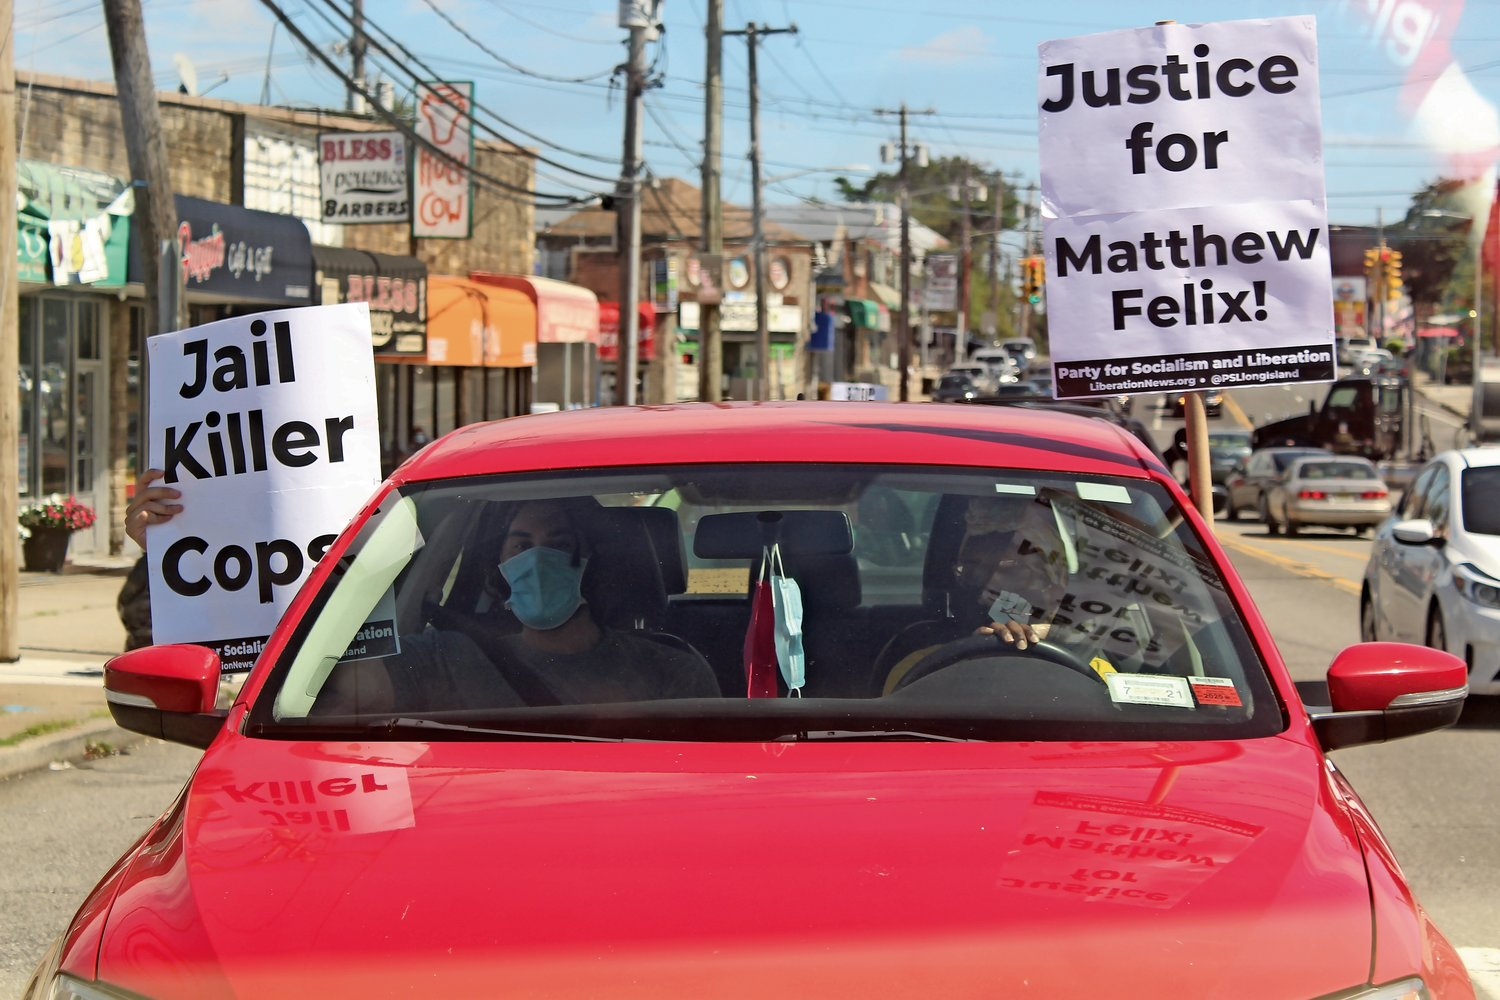 rotestors drove from Elmont to Cambria Heights to raise awareness of Felix's case.